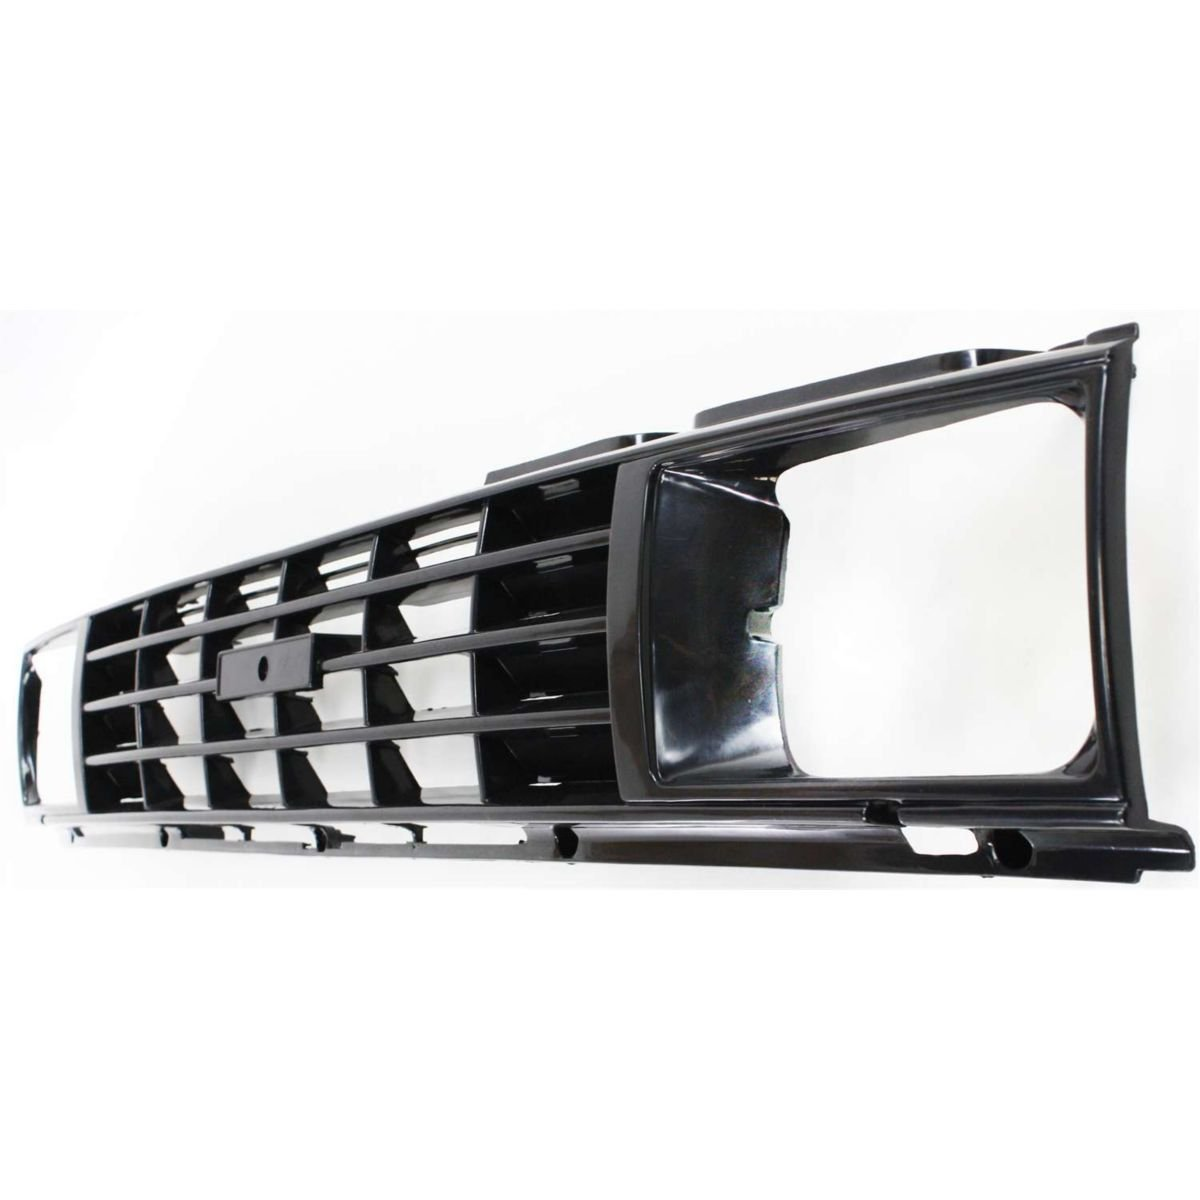 Diften 102-A4192-X01 - New Grille Assembly Black Toyota Pickup Truck 86 85 84 1986 TO1200107 5310089109